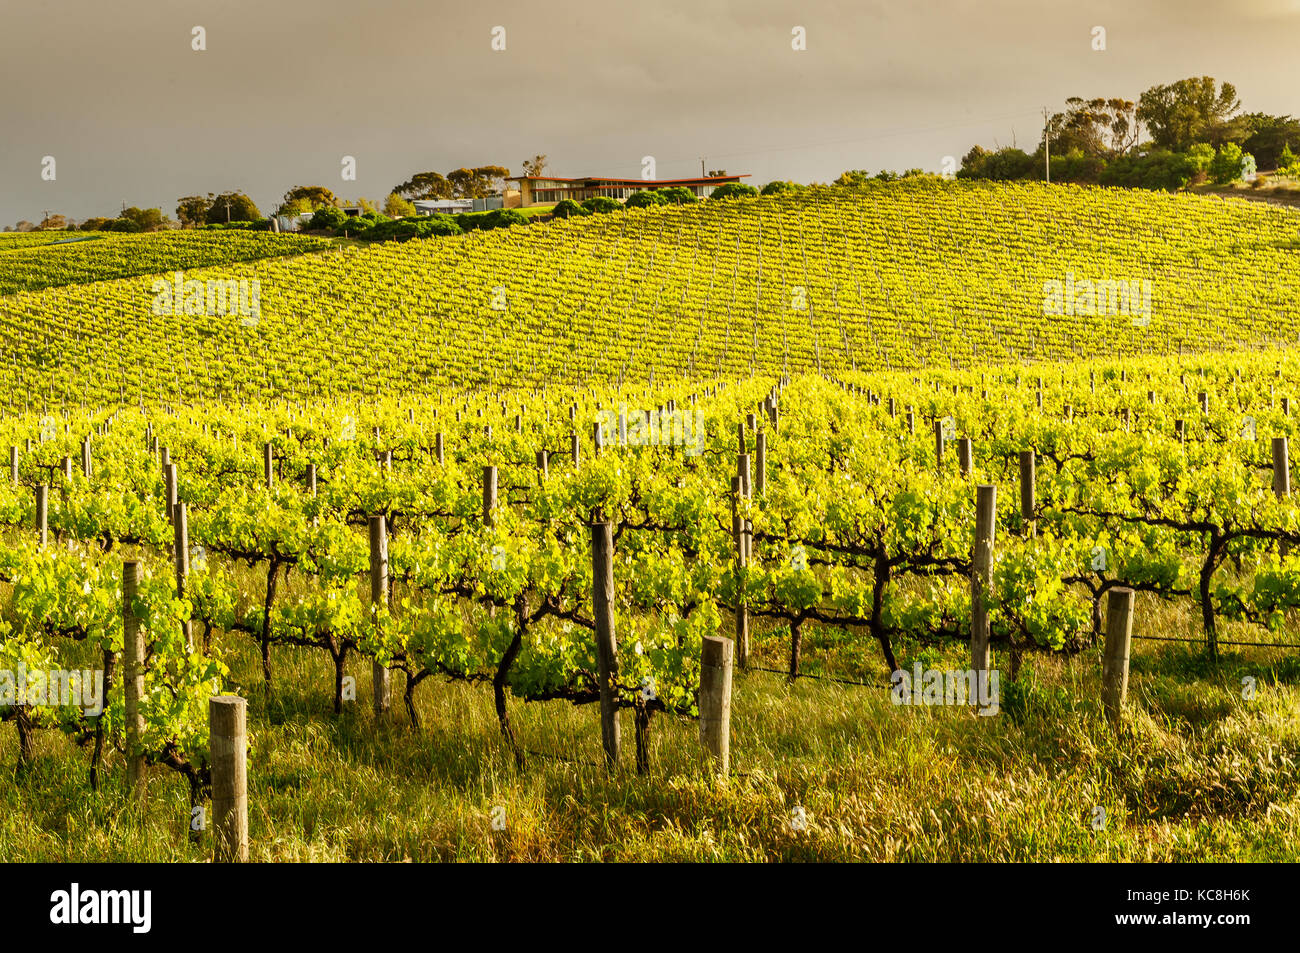 Vineyards in the famous South Australian wine region McLaren Vale. - Stock Image